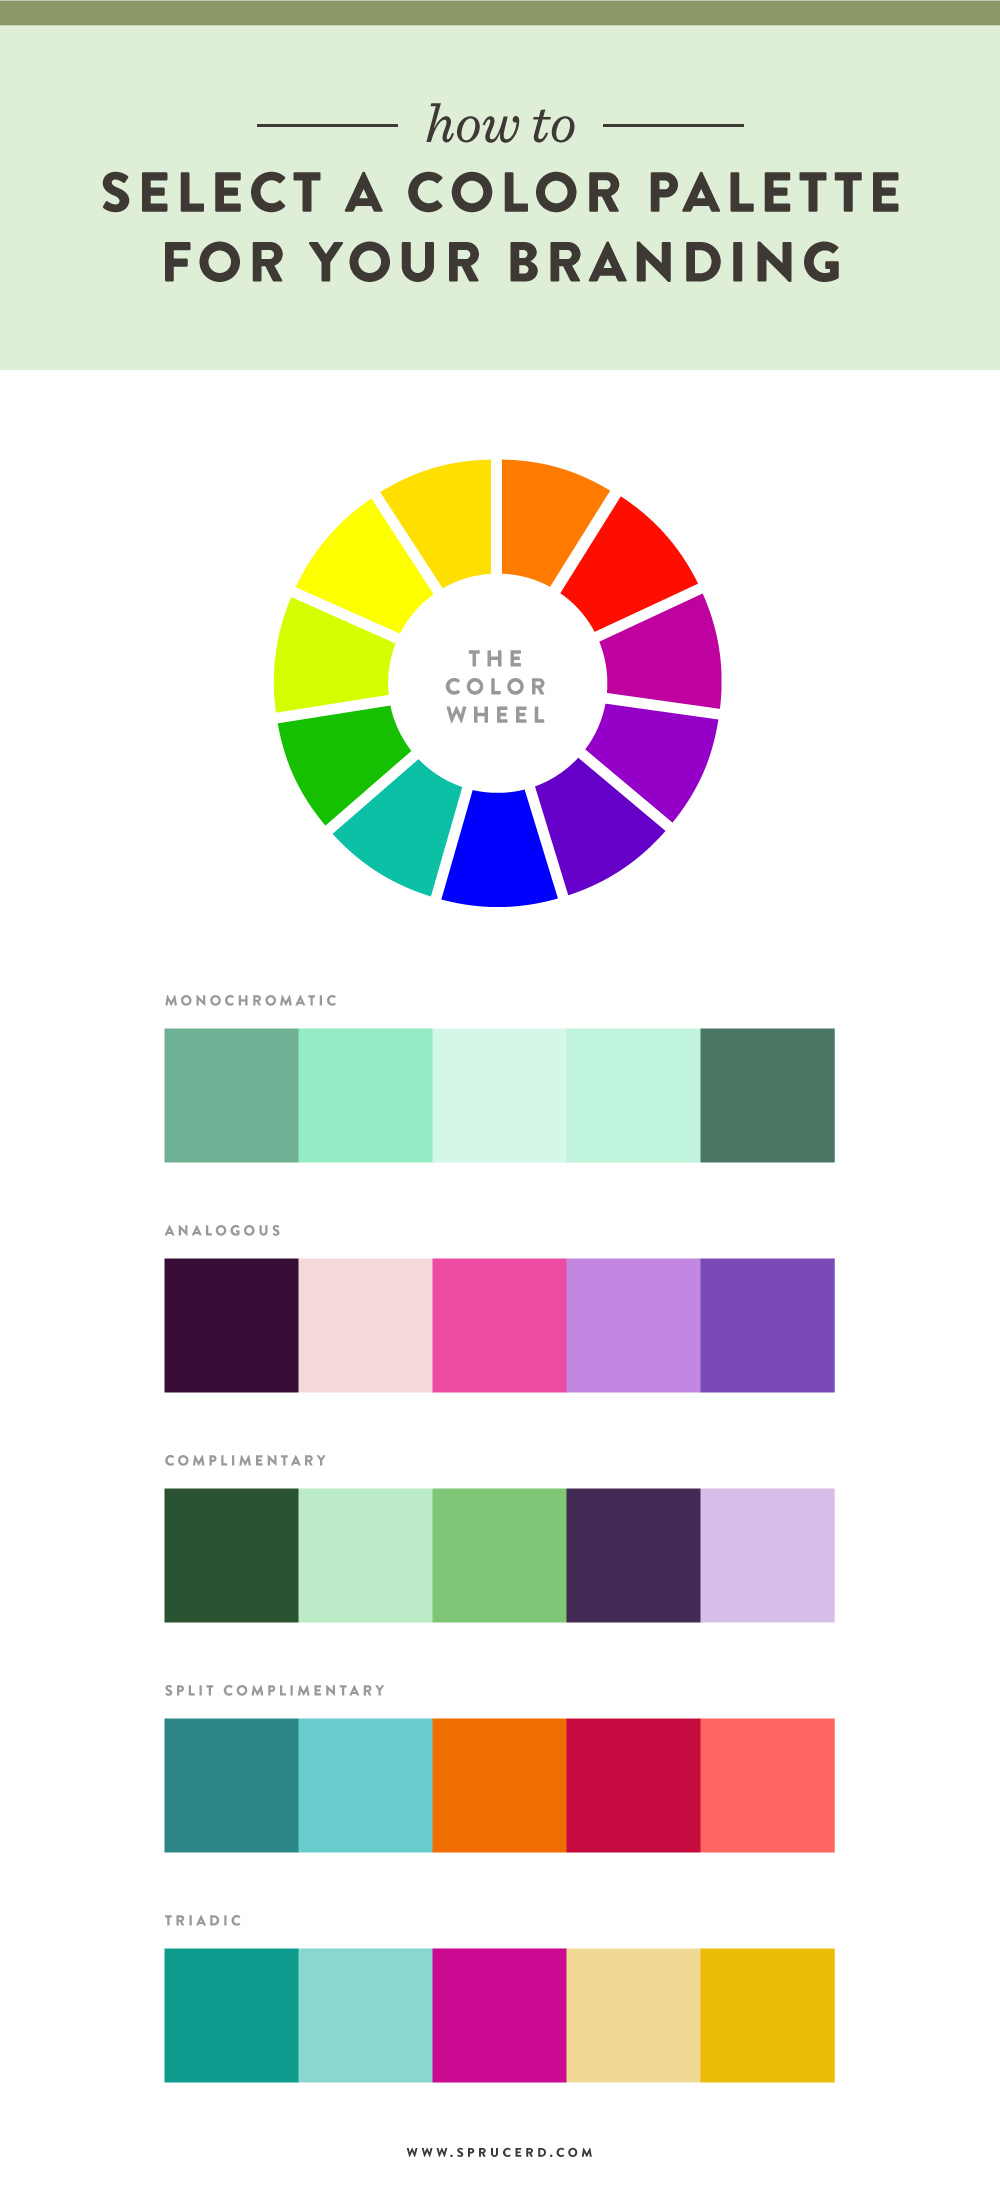 How to select a color palette for your branding — Spruce Rd.